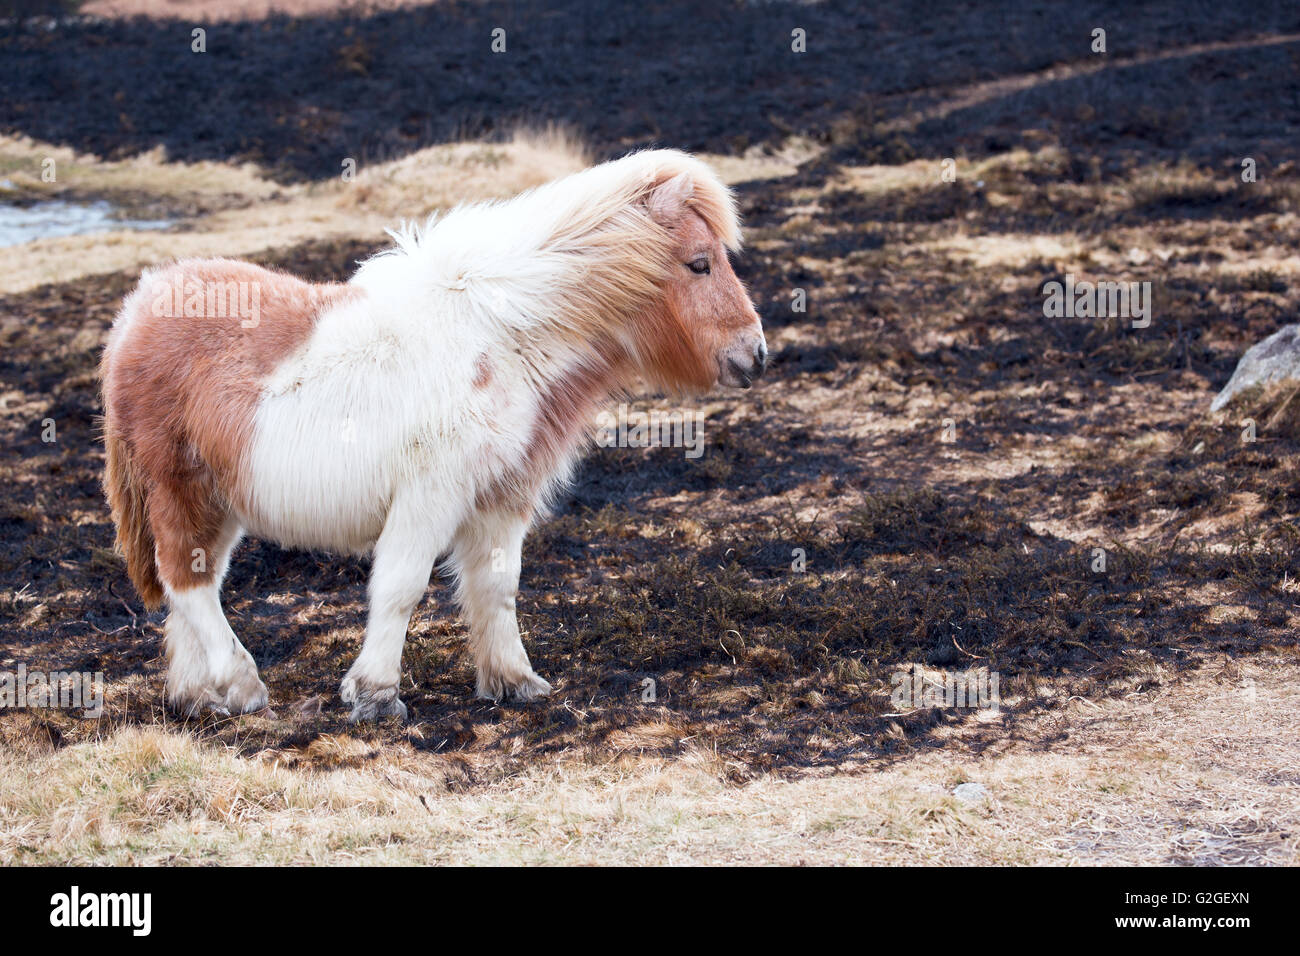 A young foal stood on an area of burnt grass after swaling on Dartmoor National Park Devon Uk - Stock Image